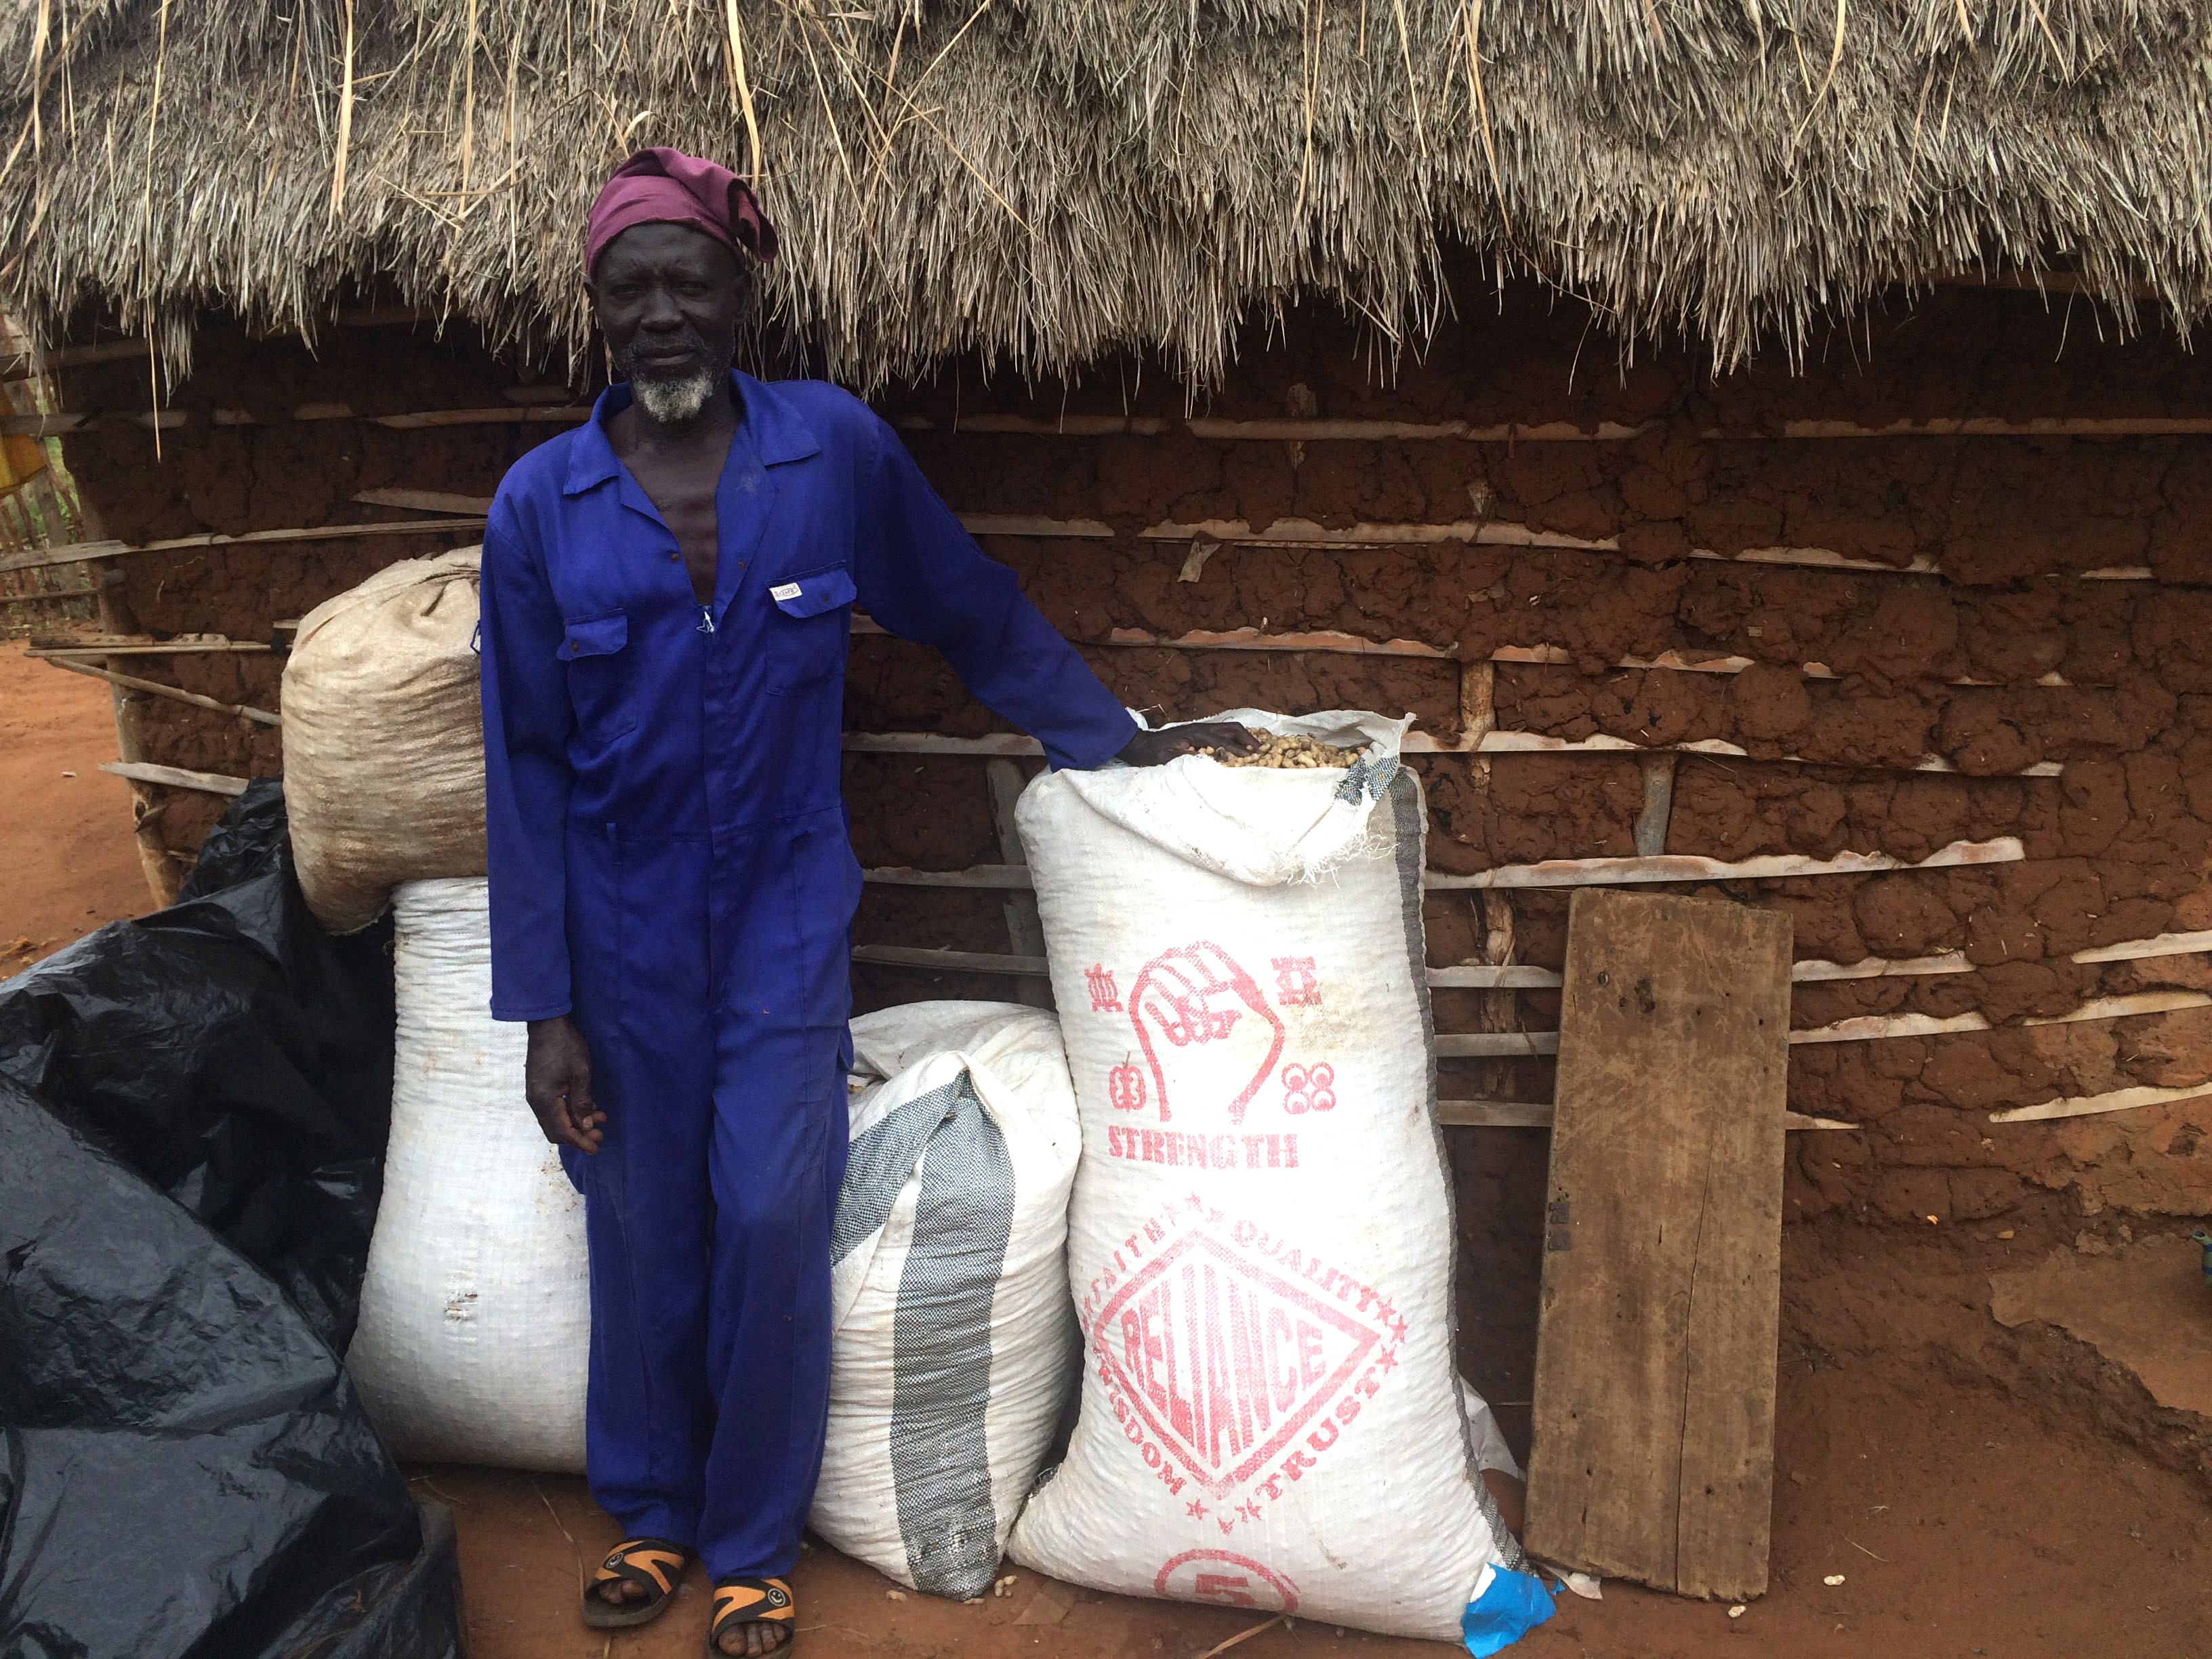 Dagomba is one of the villages in Ghana where farmers work with PMIL partners to learn new growing and storage techniques.